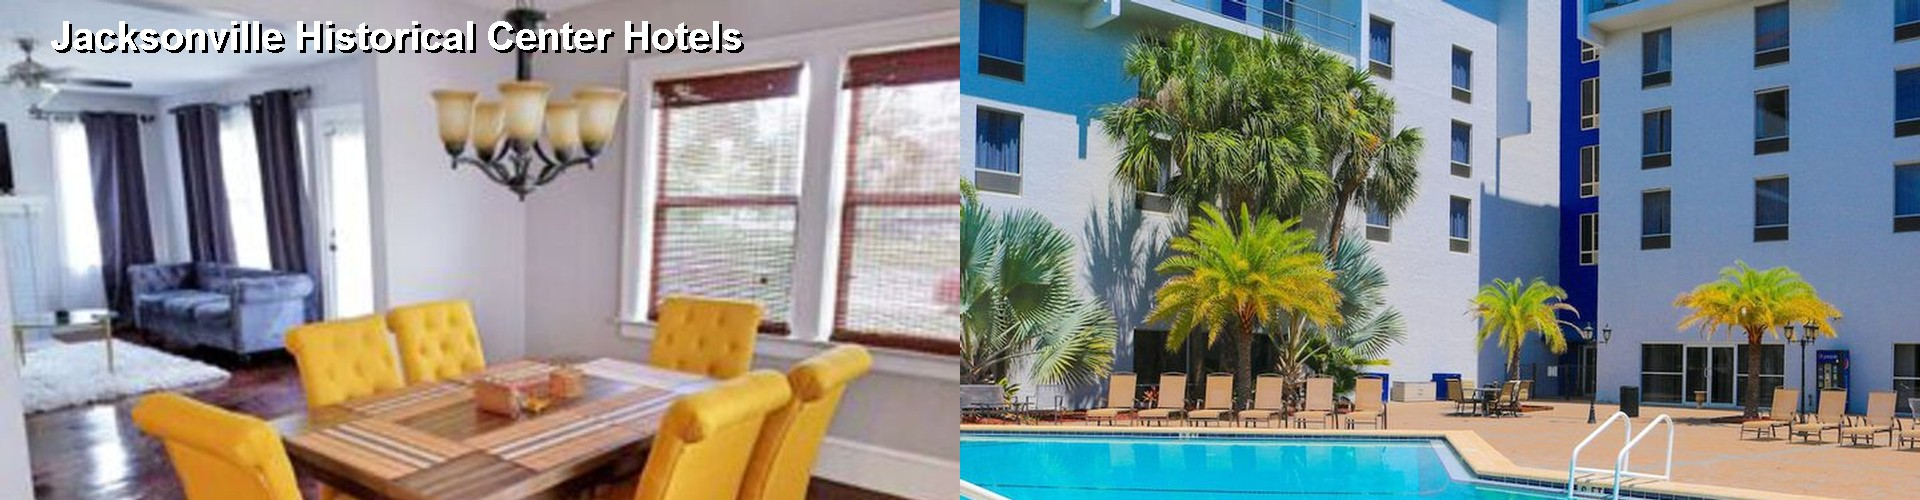 5 Best Hotels near Jacksonville Historical Center